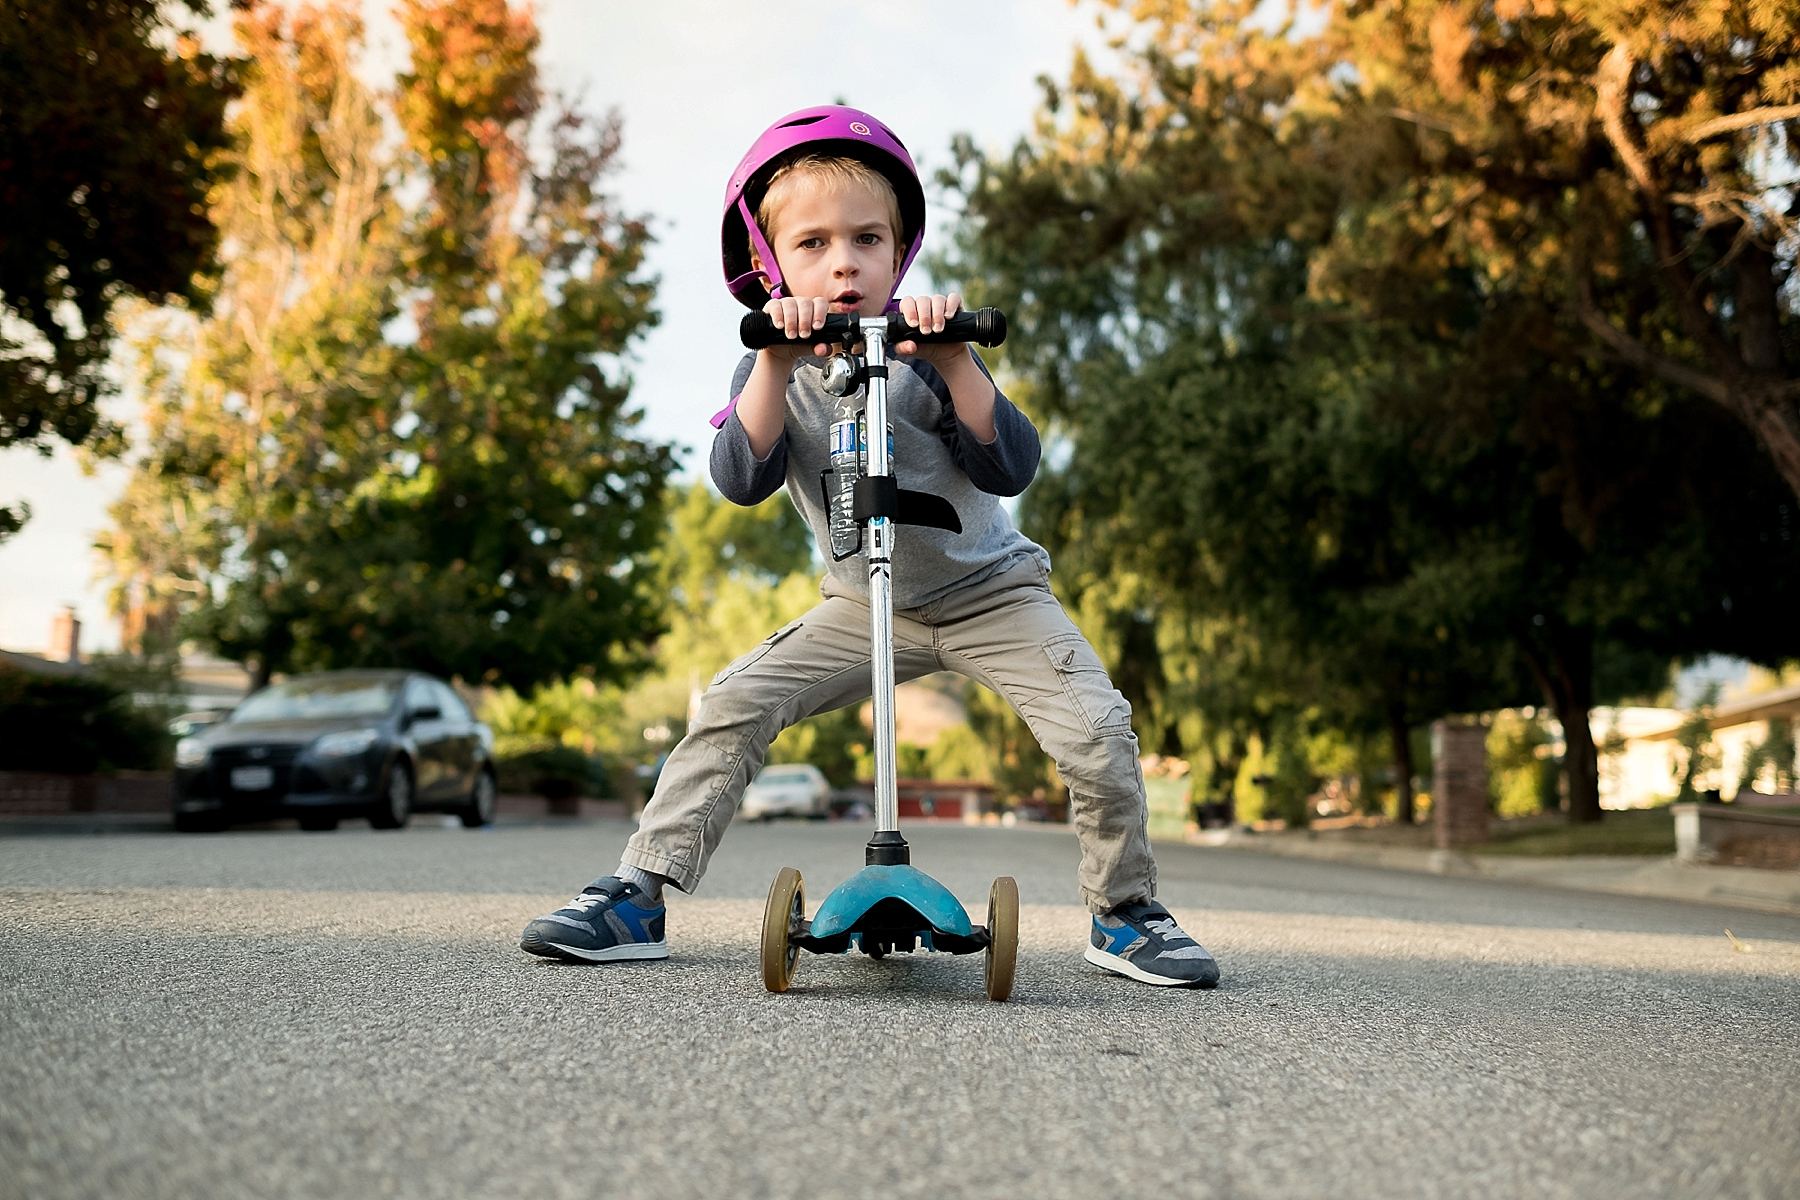 Candid and documentary photo of a boy posing with his scooter in Claremont, CA taken by Erica Faith Photography.